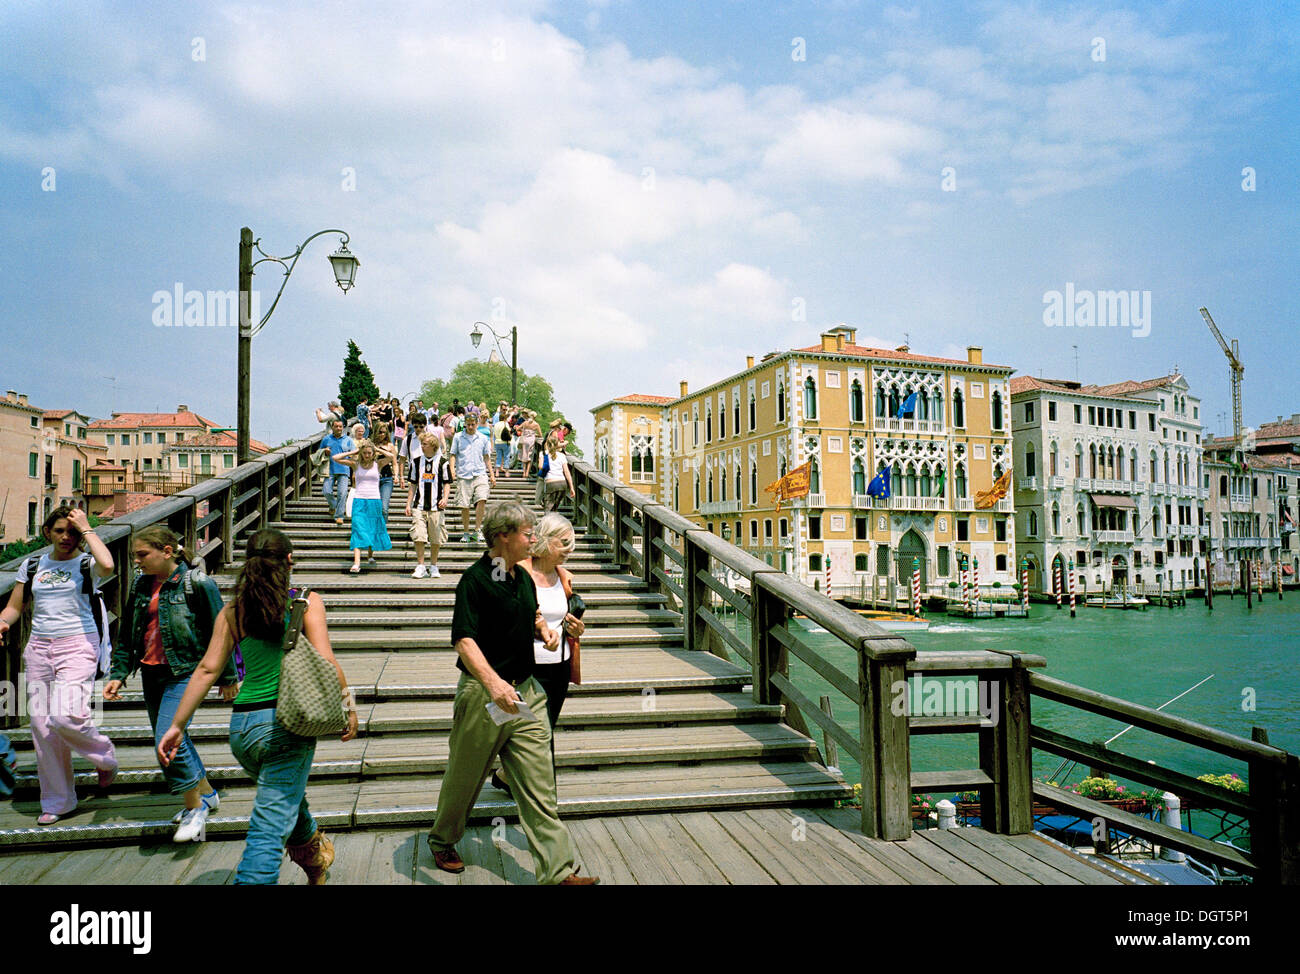 The Accademia wooden bridge over the Grand Canal in Venice - Stock Image